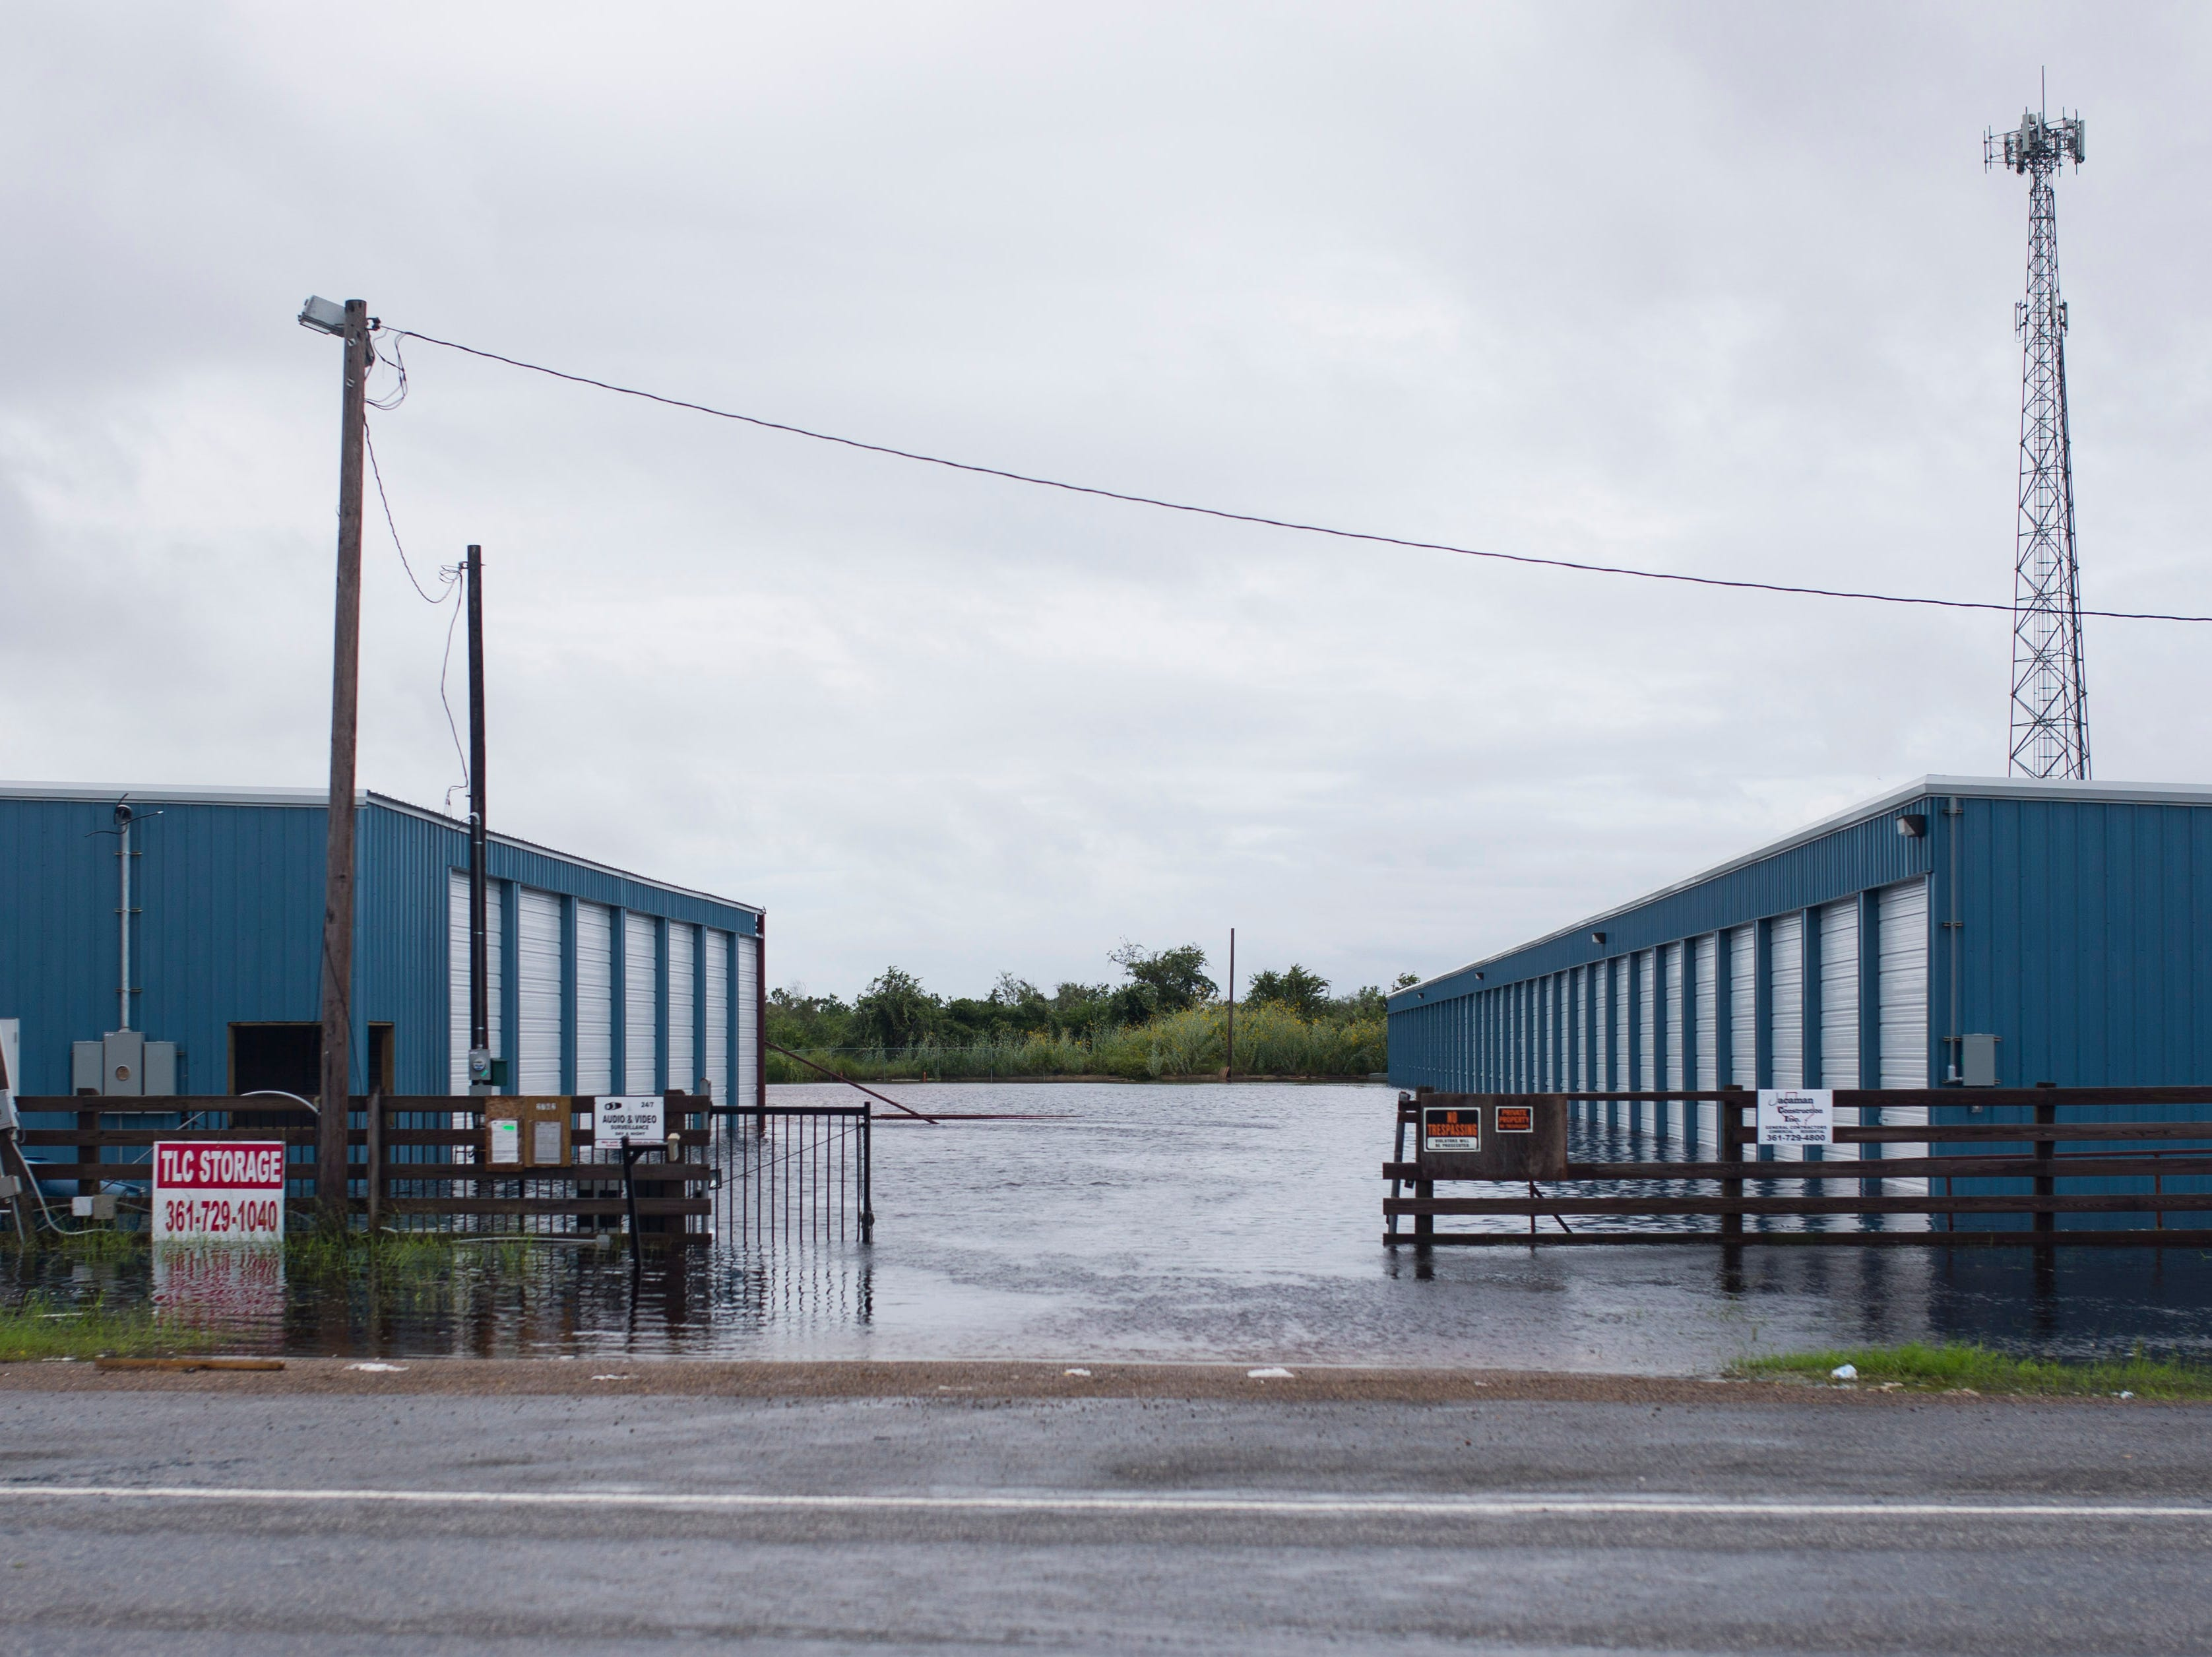 TLC storage units sit flooded in Rockport, Texas on Saturday, Sept. 15, 2018.